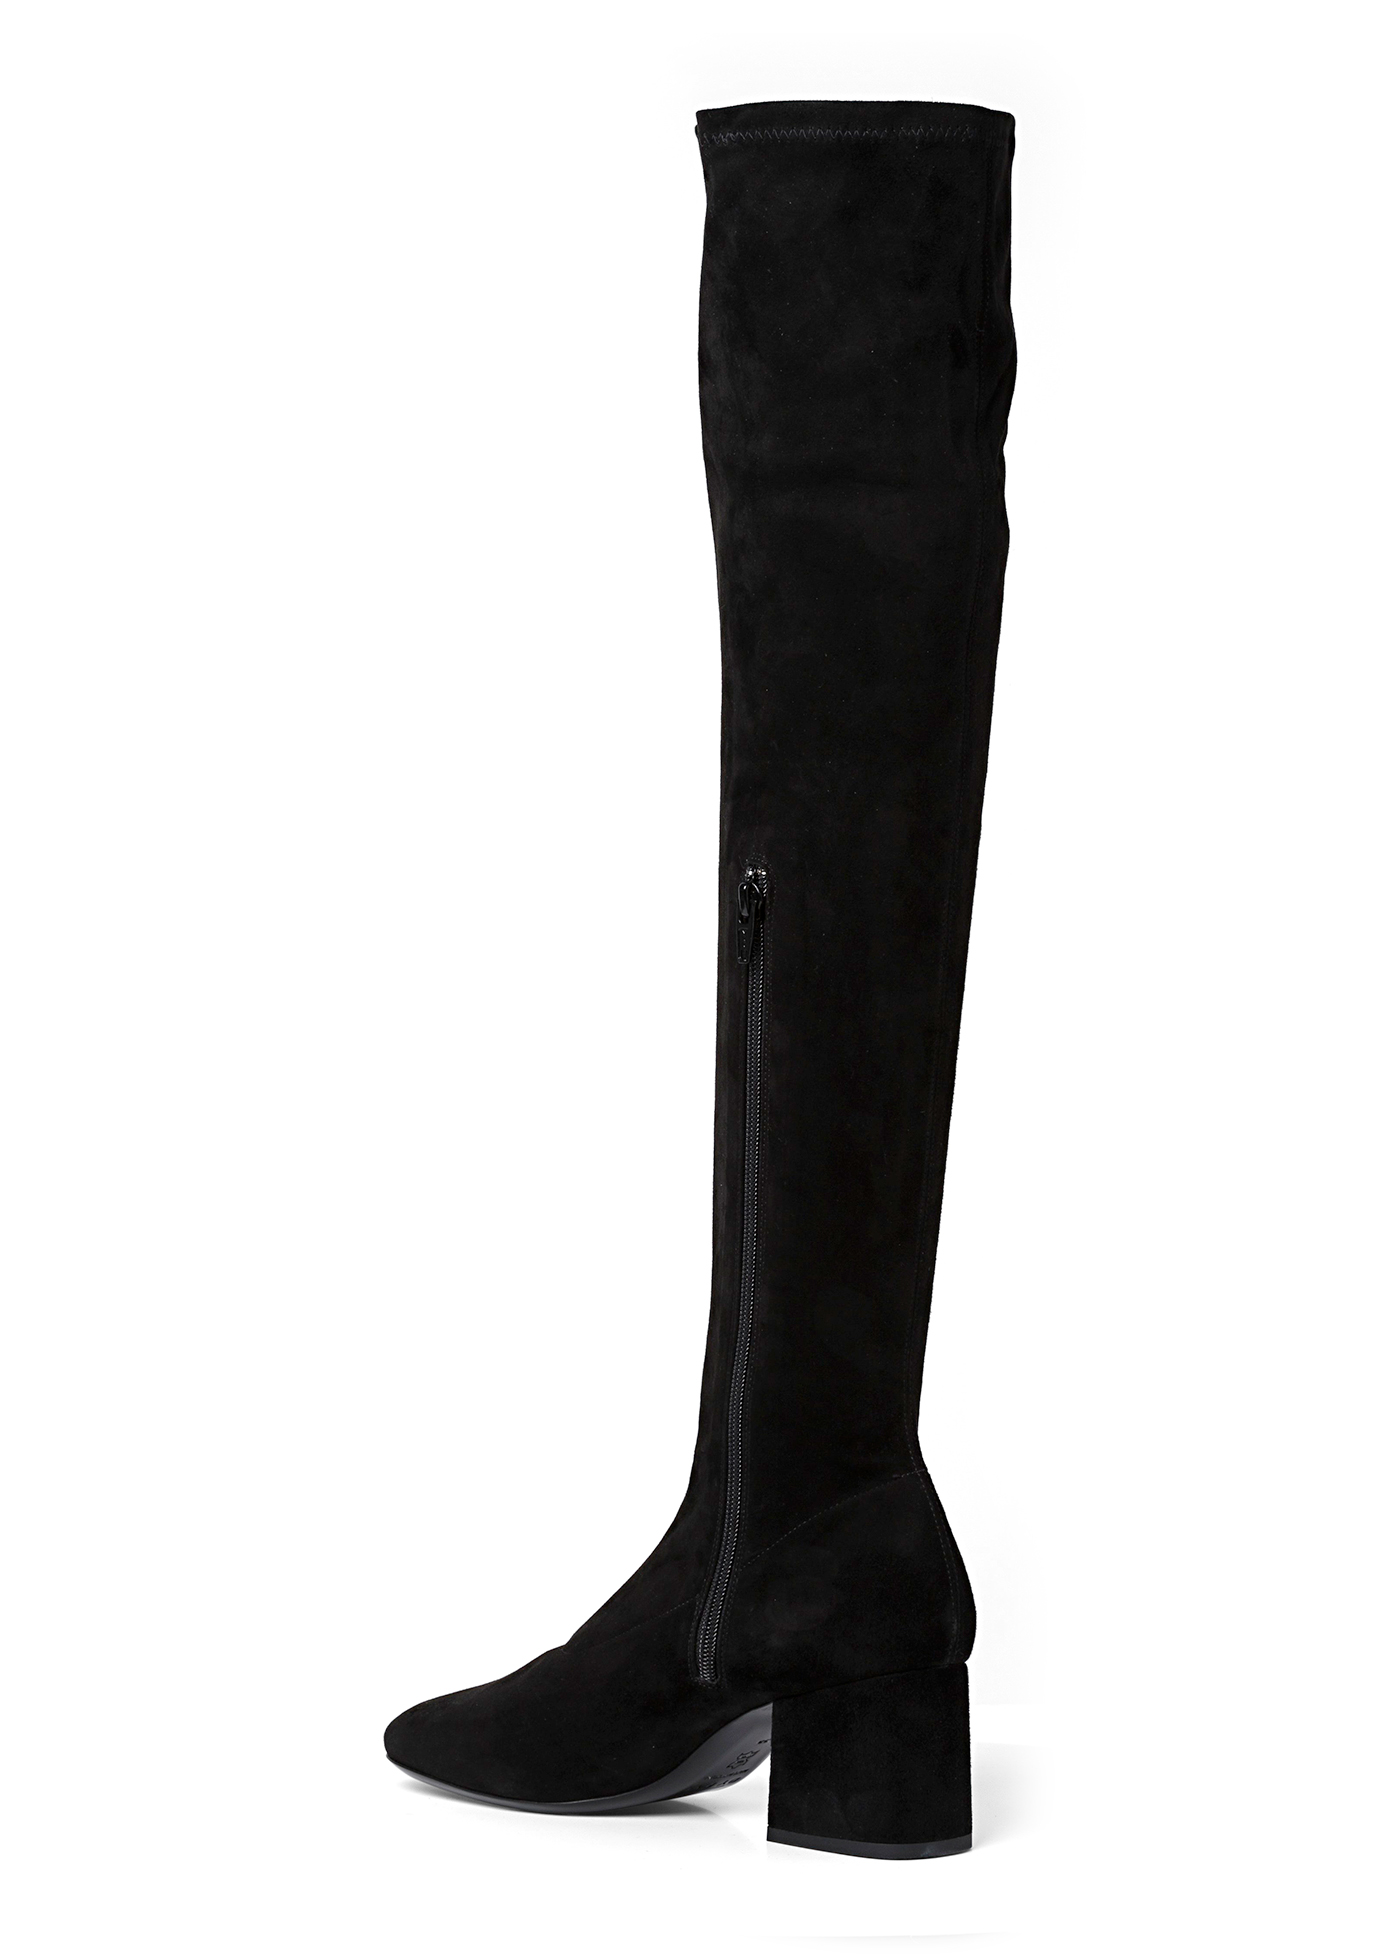 CARLOS 42 BLACK STRETCH SUEDE LEATHER image number 2